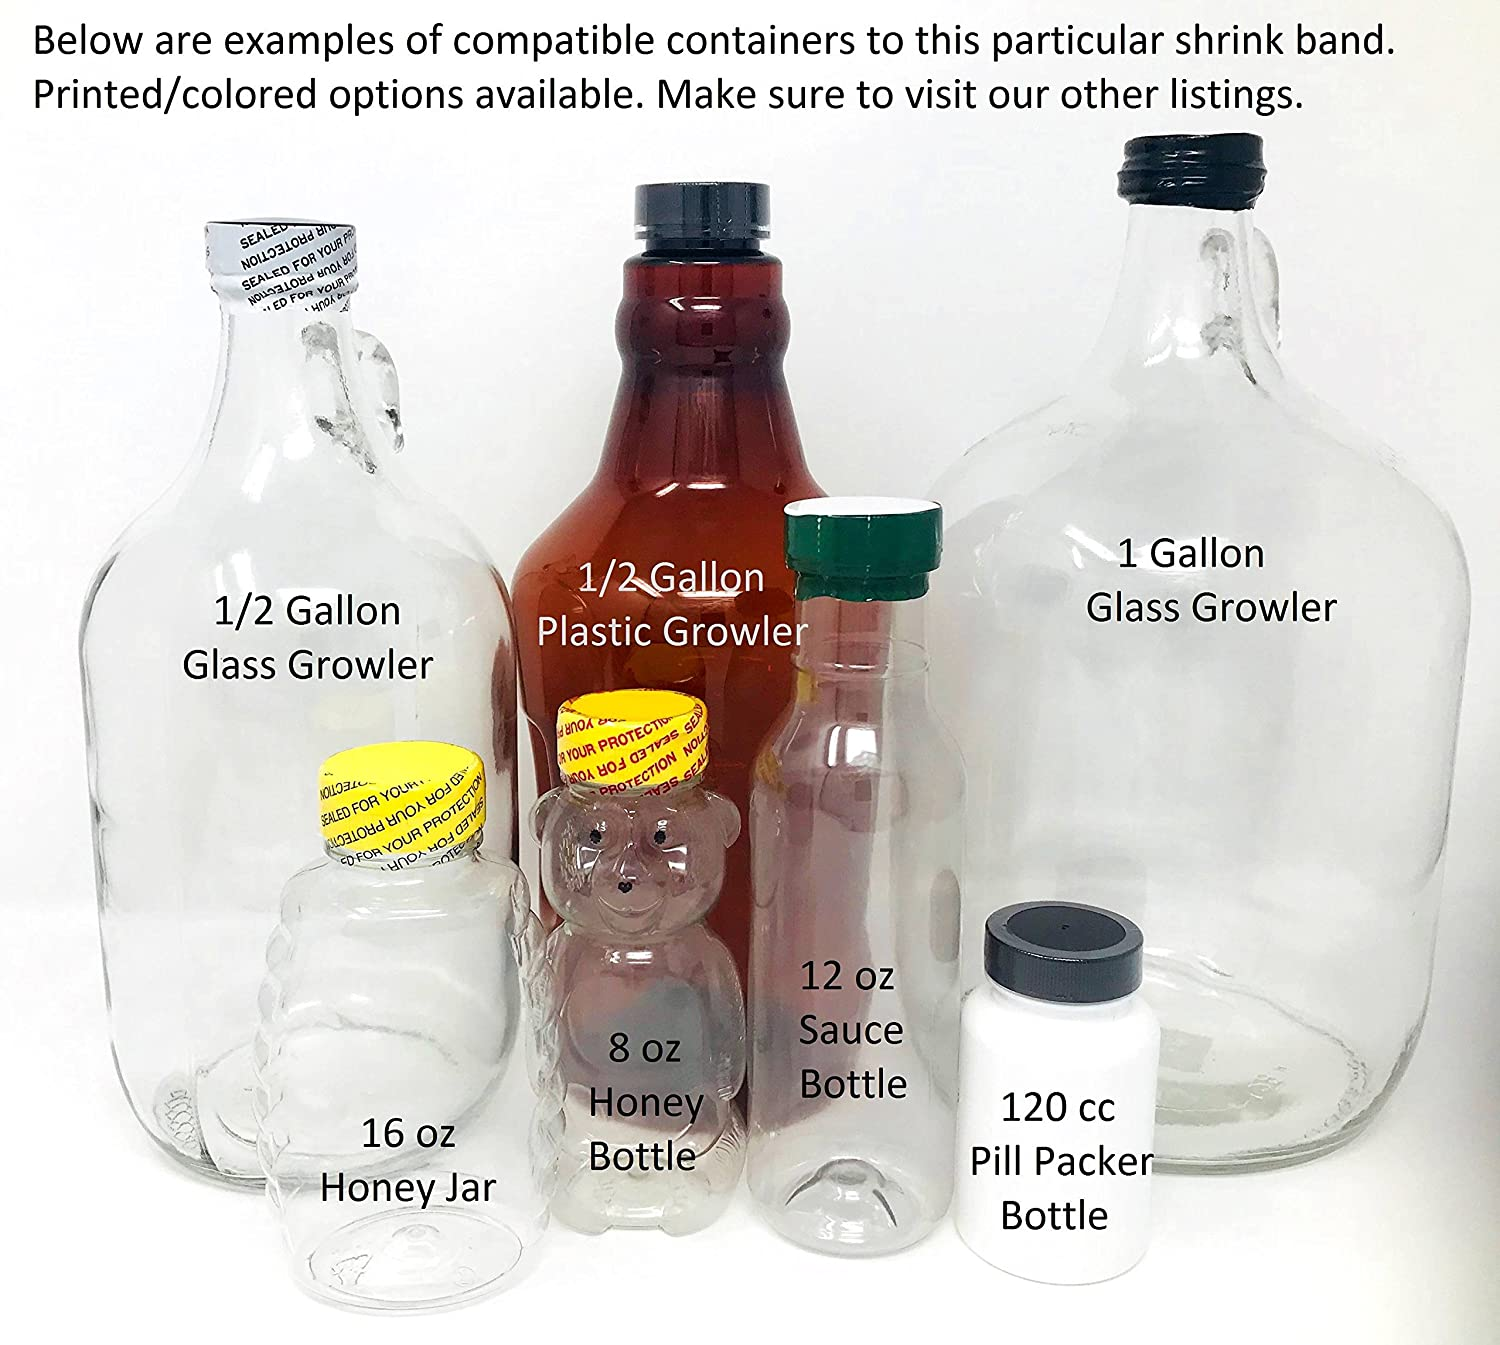 and More. Honey Bottles 66 x 25 mm Clear Perforated Shrink Band for Growler Bottles Gallon Jugs Compatible Diameter Range: 32 mm - 38 mm Pharmaceutical Bottles - Bundle of 125